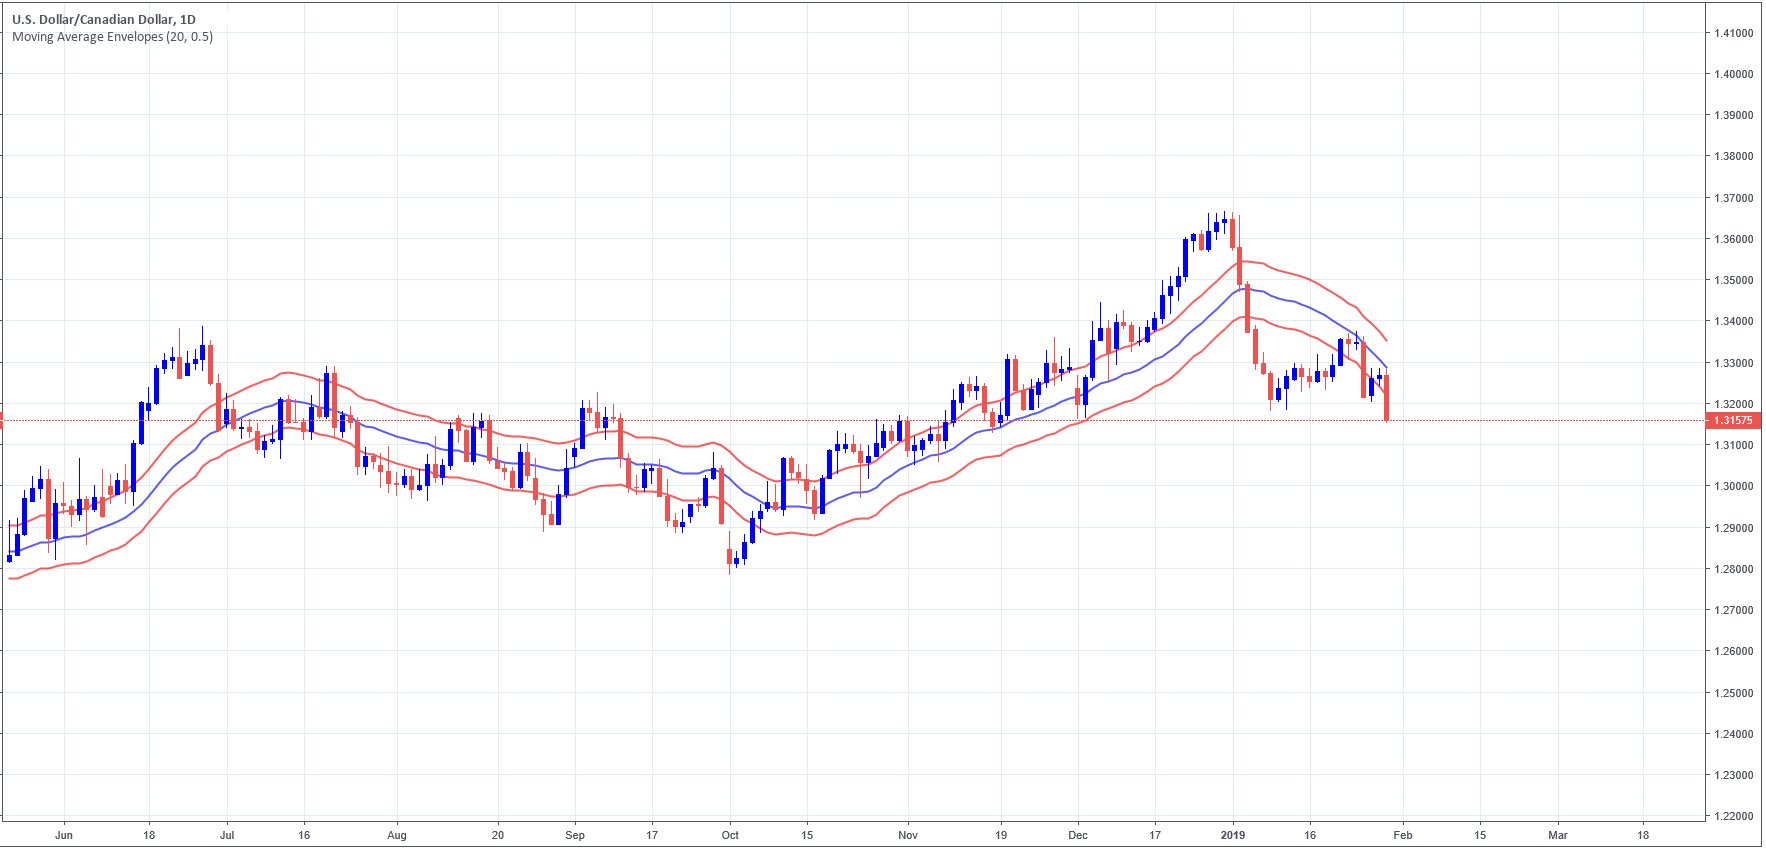 USDCAD daily chart, with a simple moving average envelope using 20 as period